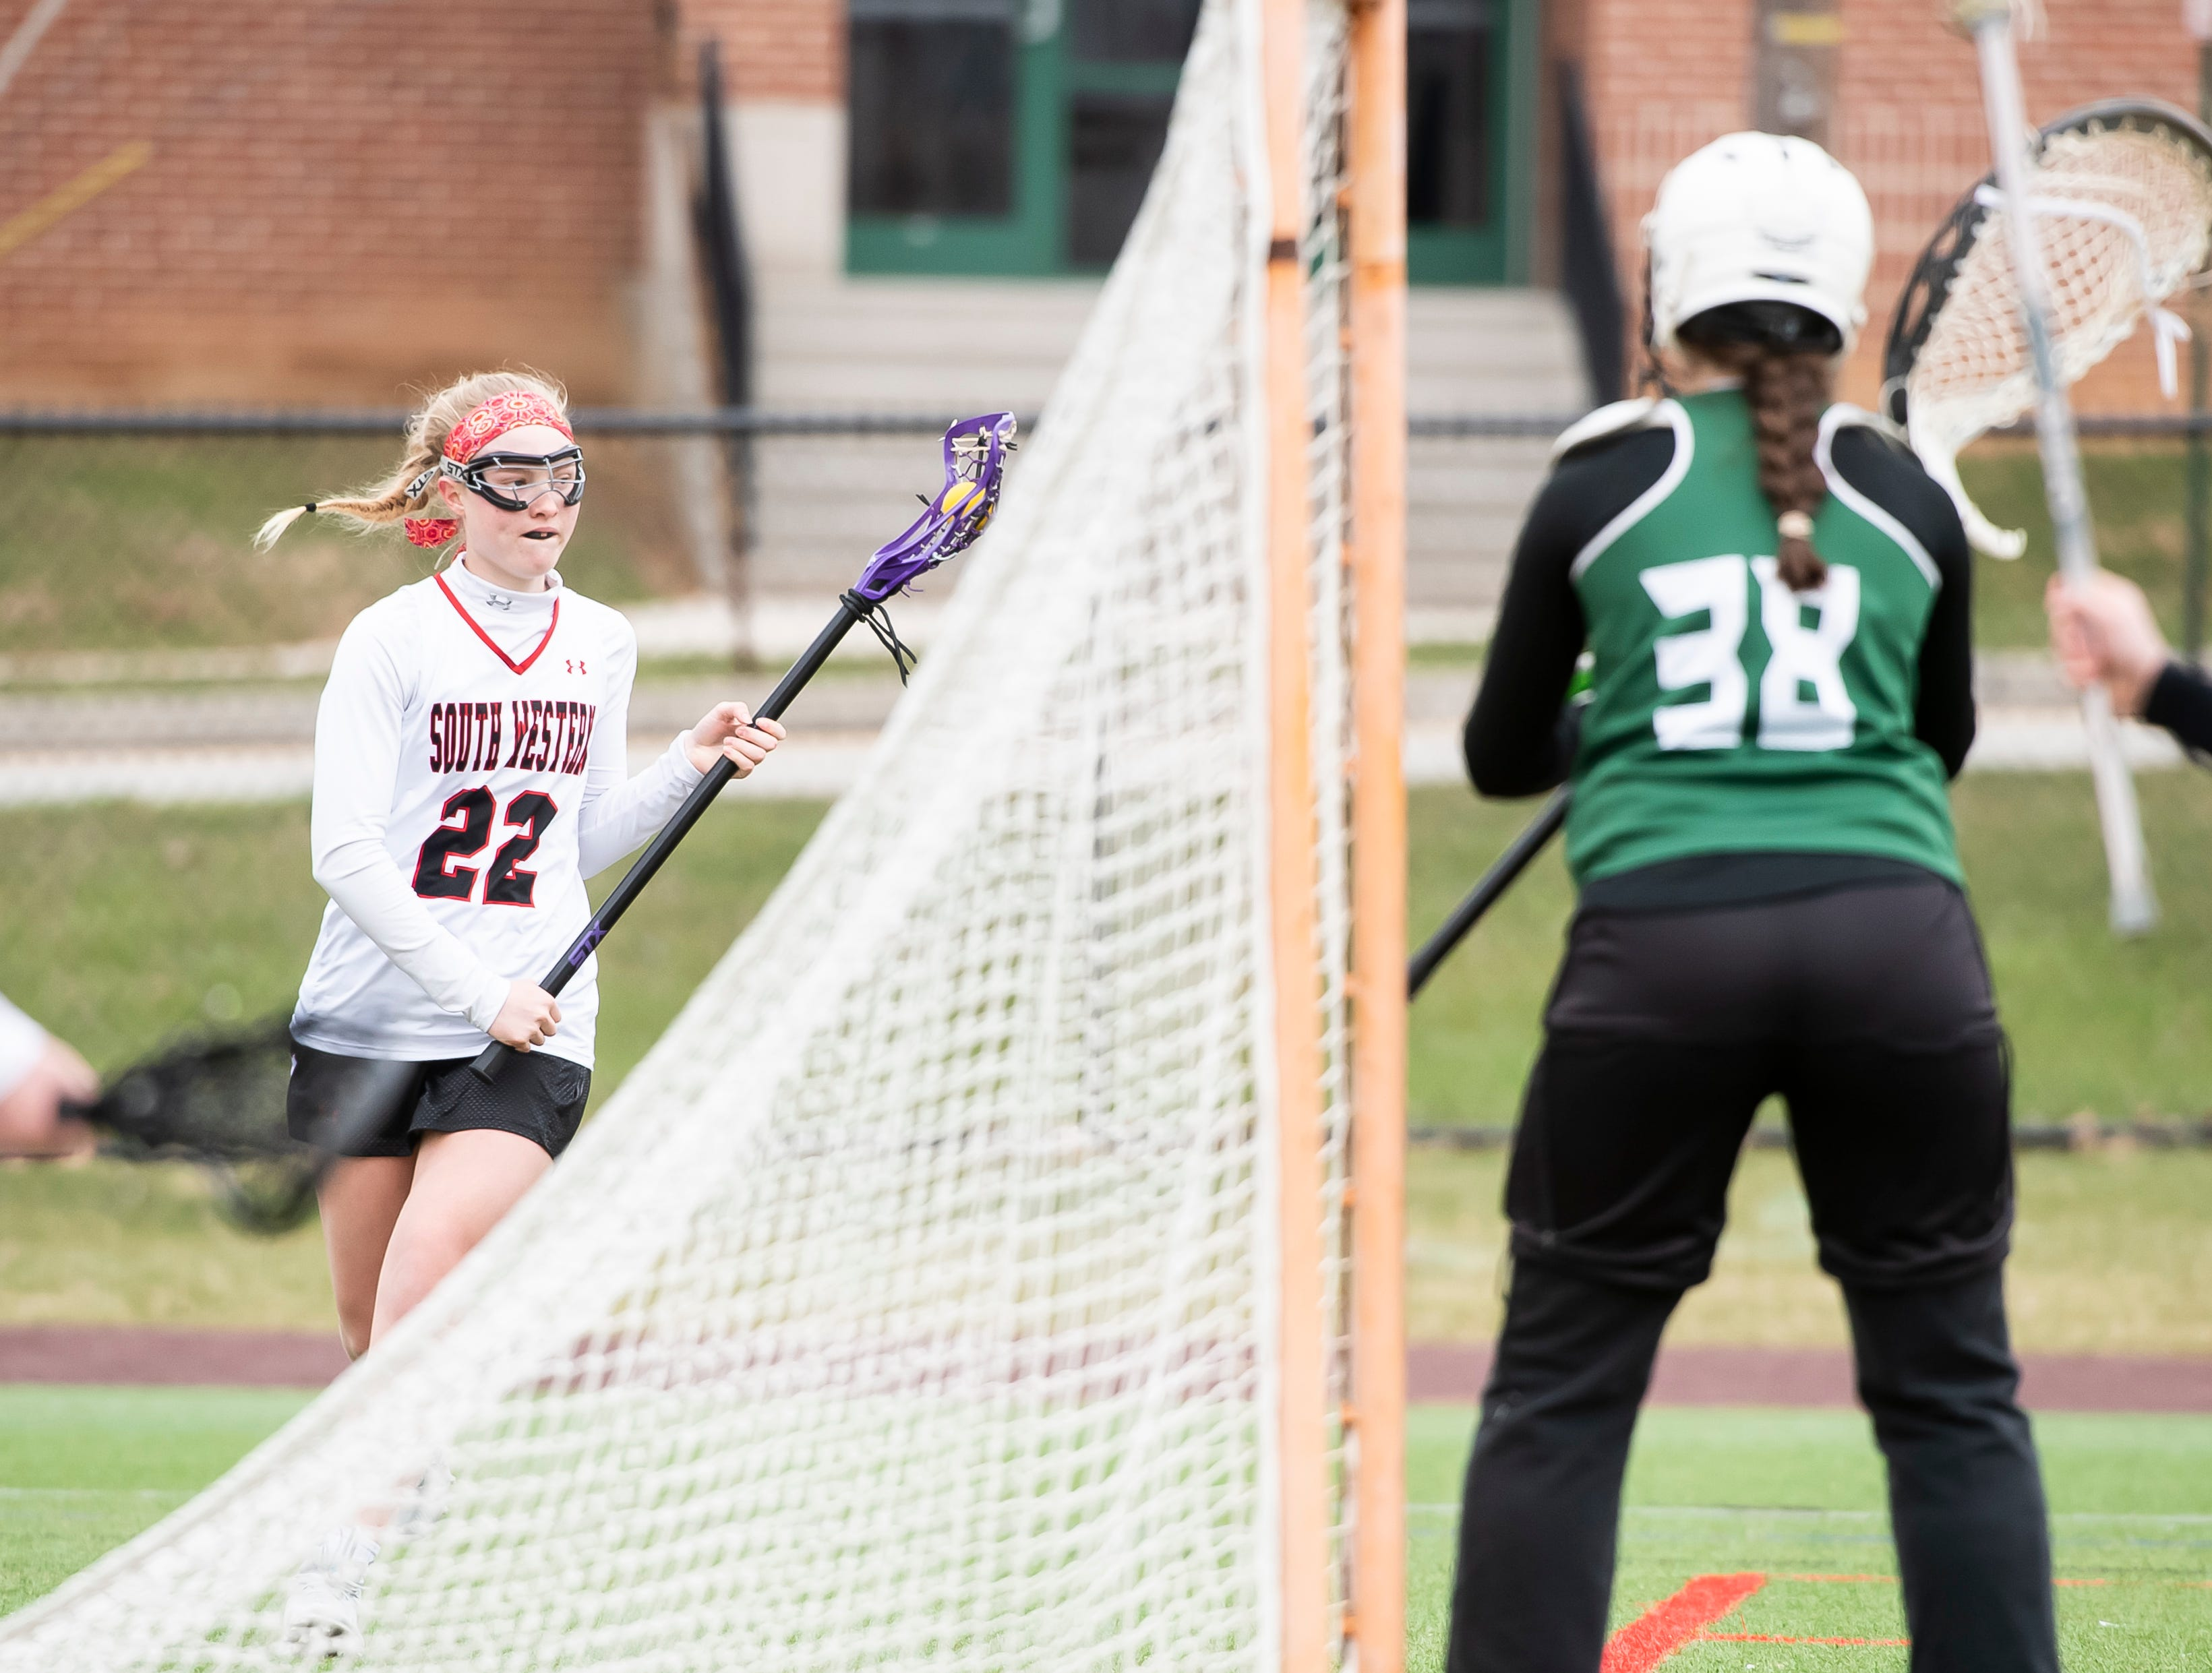 South Western's Aunnie Hacker (22) controls the ball near the net during a YAIAA lacrosse game against York Catholic in Hanover on Tuesday, April 2, 2019. South Western fell 19-7. Hacker finished the game with two goals, two assists, four ground balls and six shots on goal.